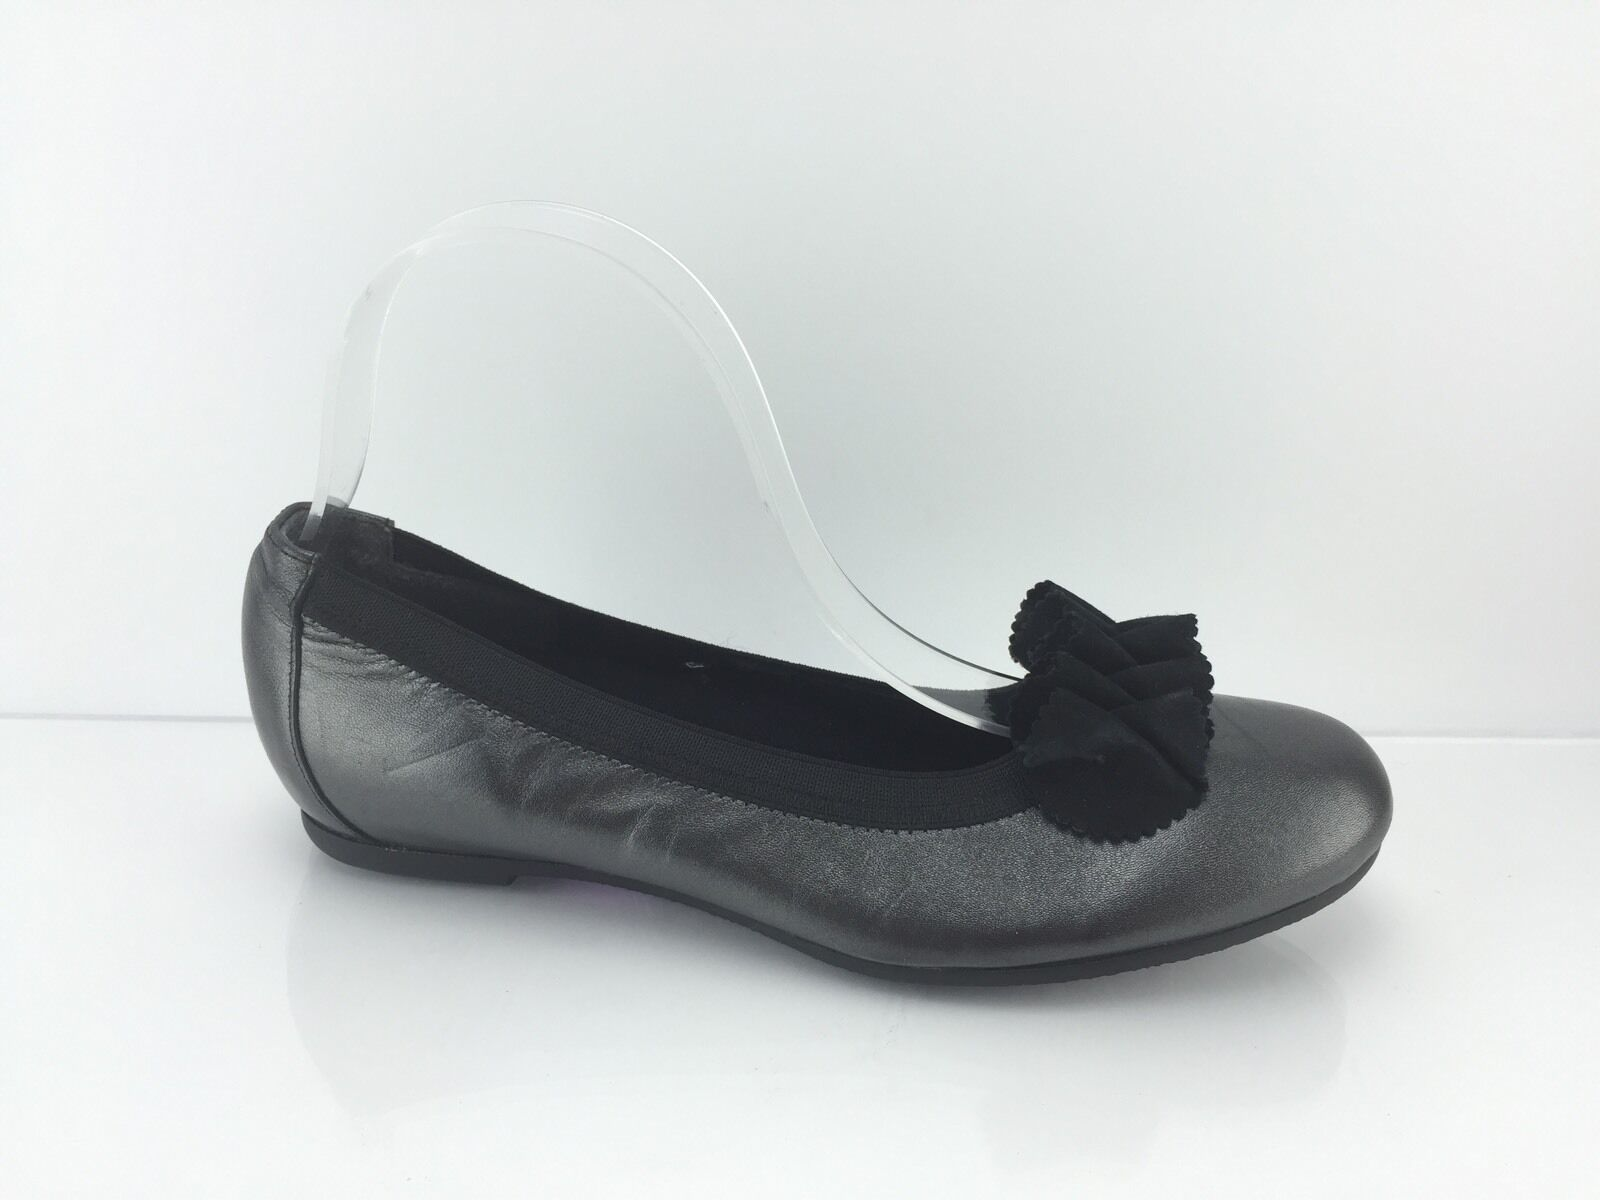 Gentleman/Lady Munro Women's Black Flats 7.5 N Adequate supply and timely delivery buy various kinds